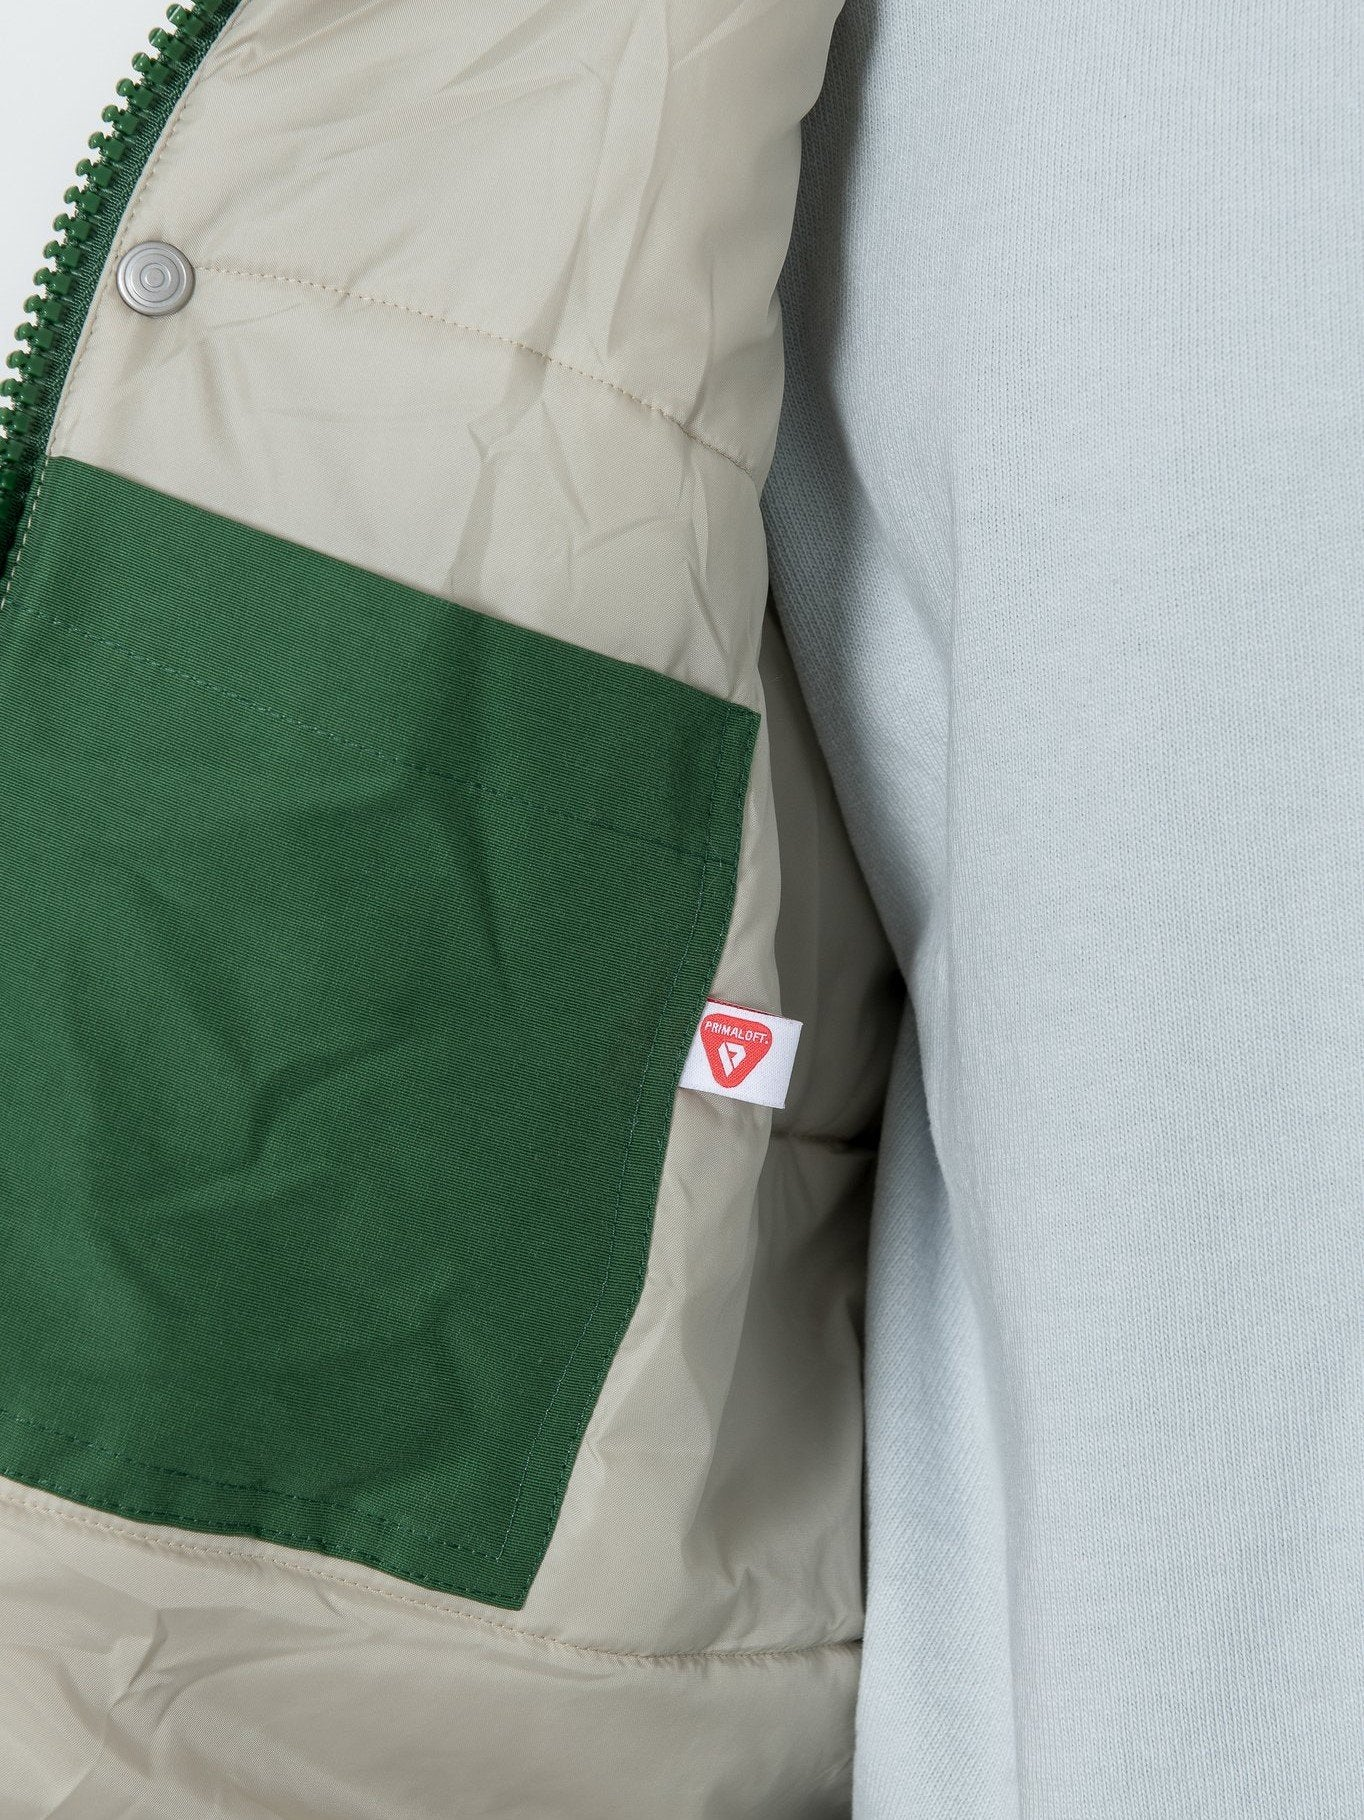 Namu Shop - paa Puft Jacket - Emerald